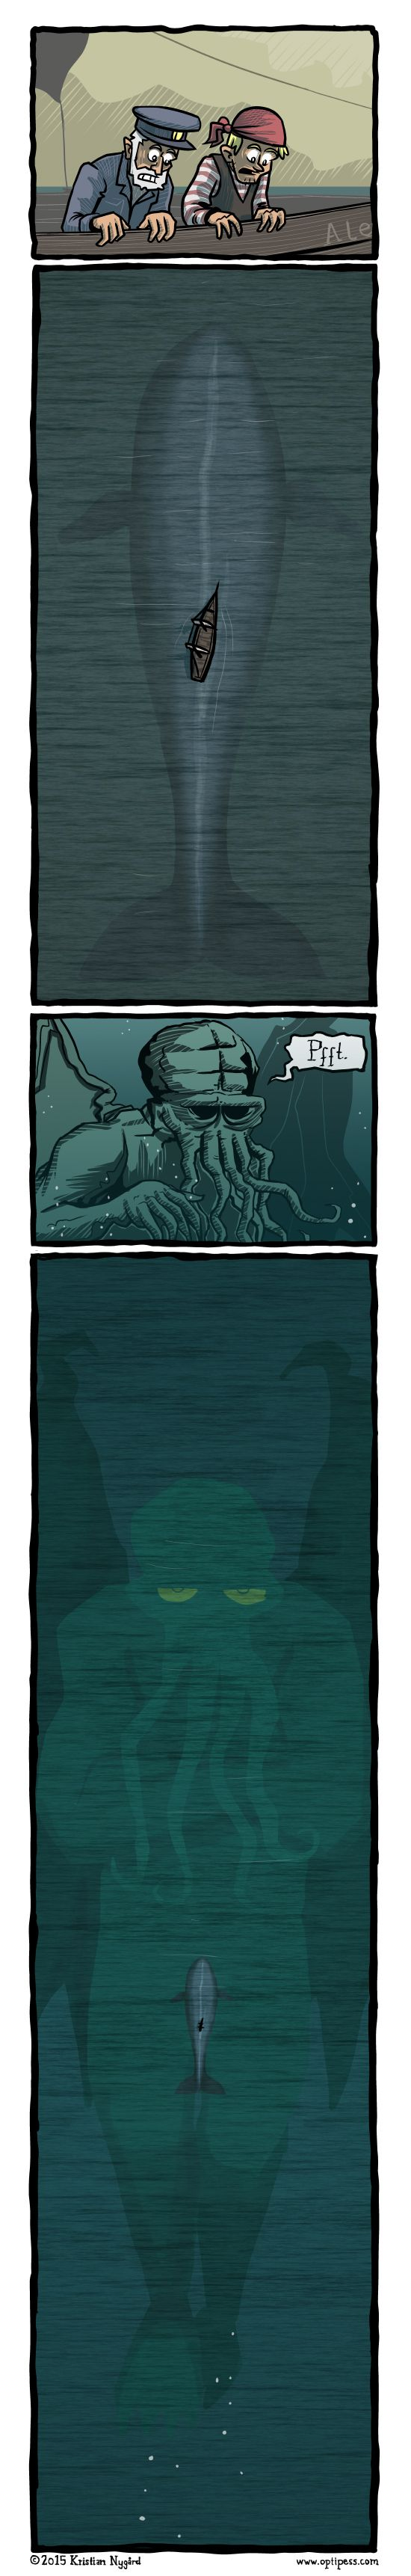 The seamen instantly went insane just as soon as they saw Cthulhu's massive, impressive… eyes.